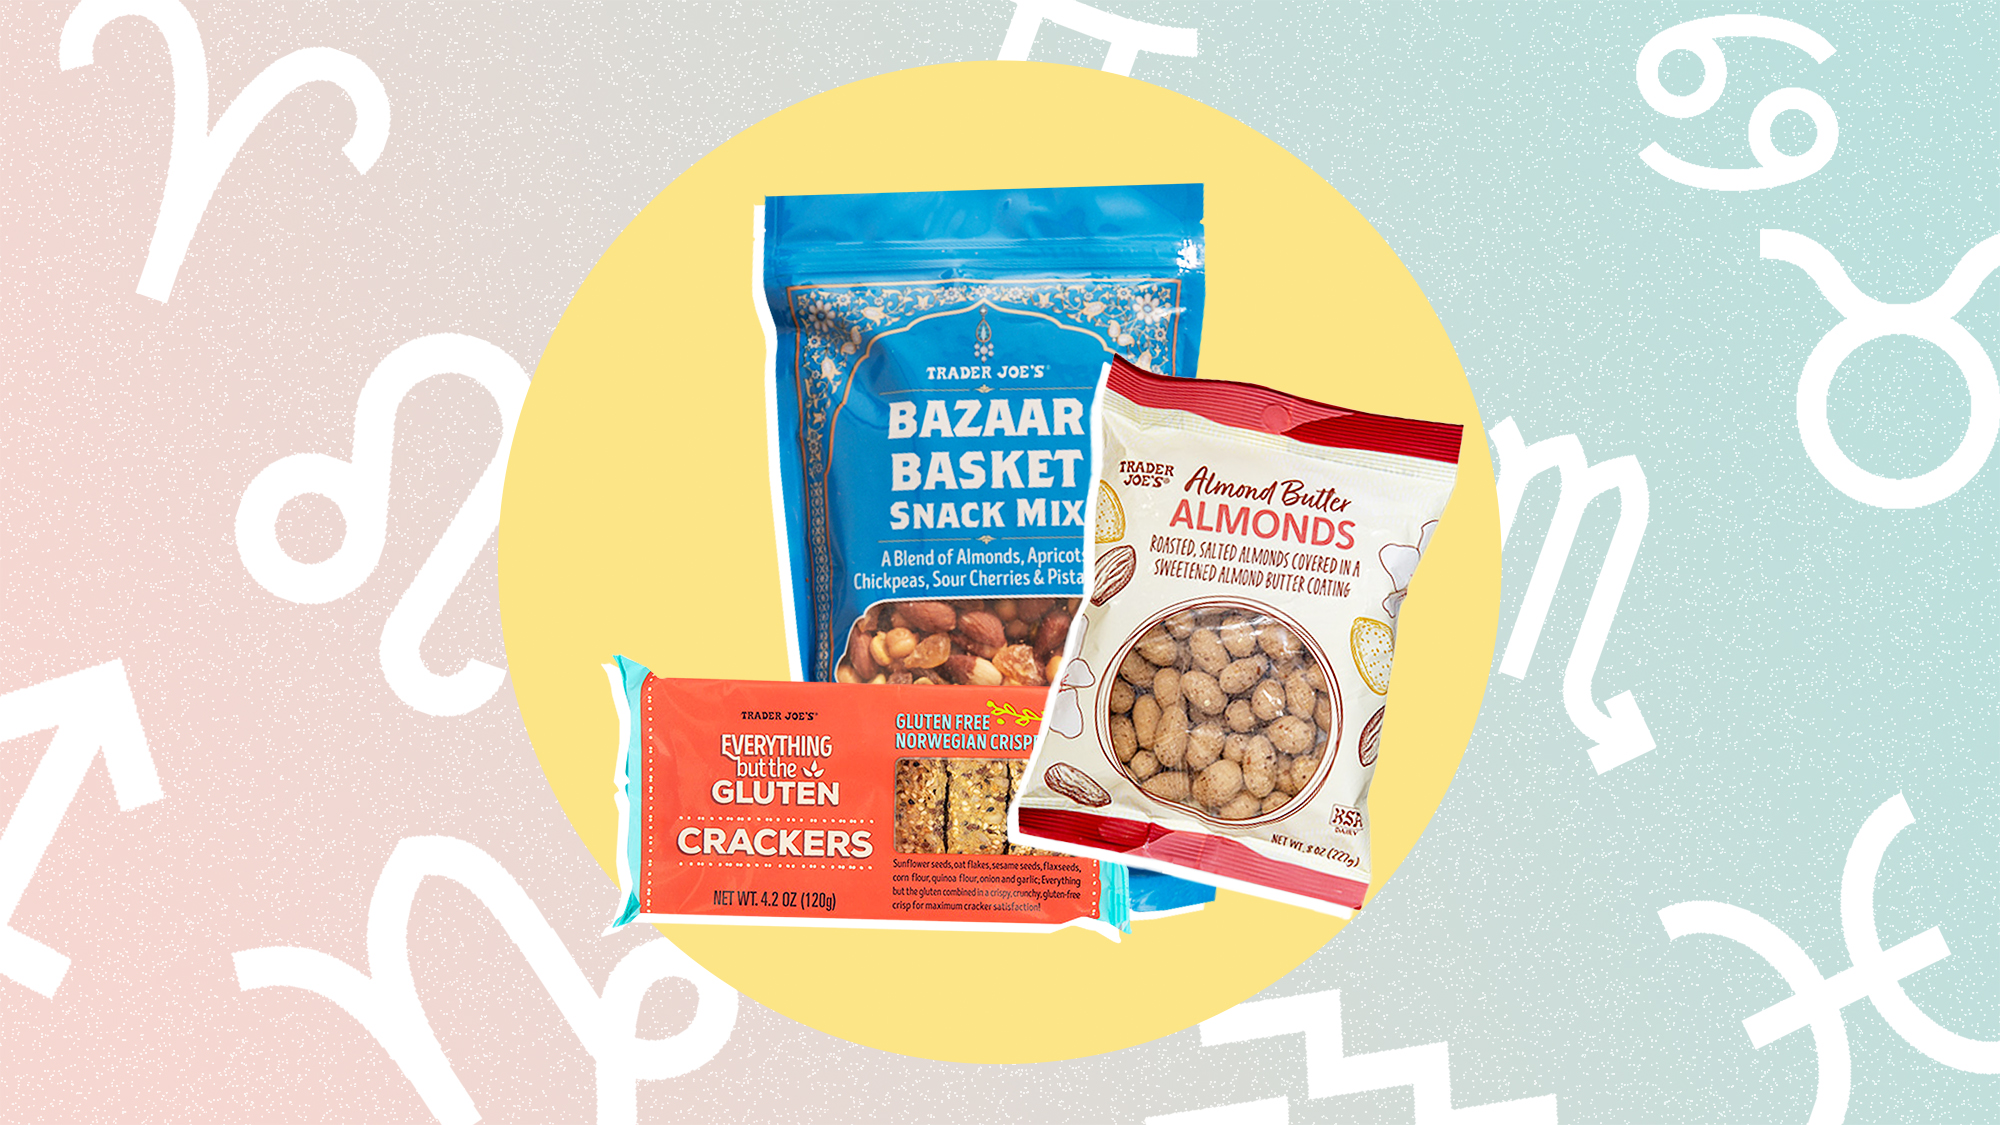 a selection of 4 Trader Joe's snacks on a designed background